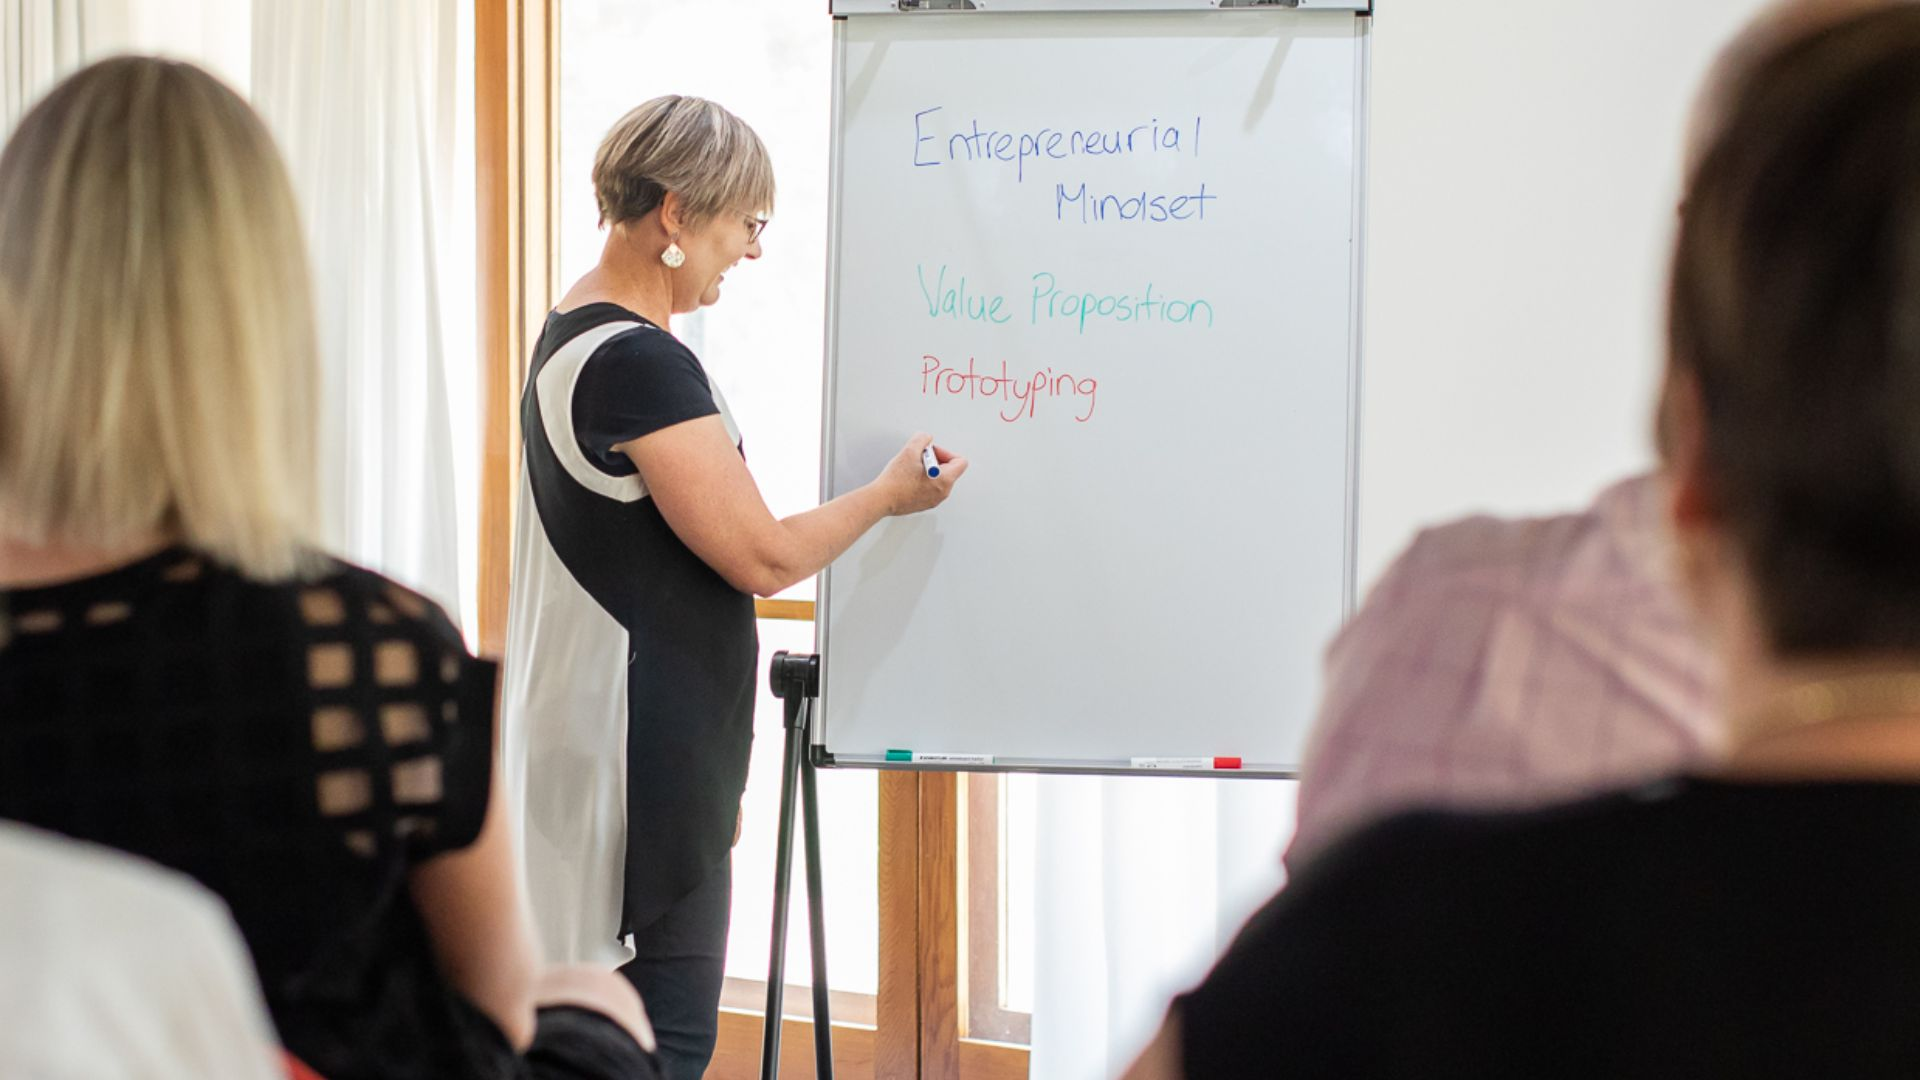 Charles Sturt masterclass series continues to assist regional business owners and entrepreneurs